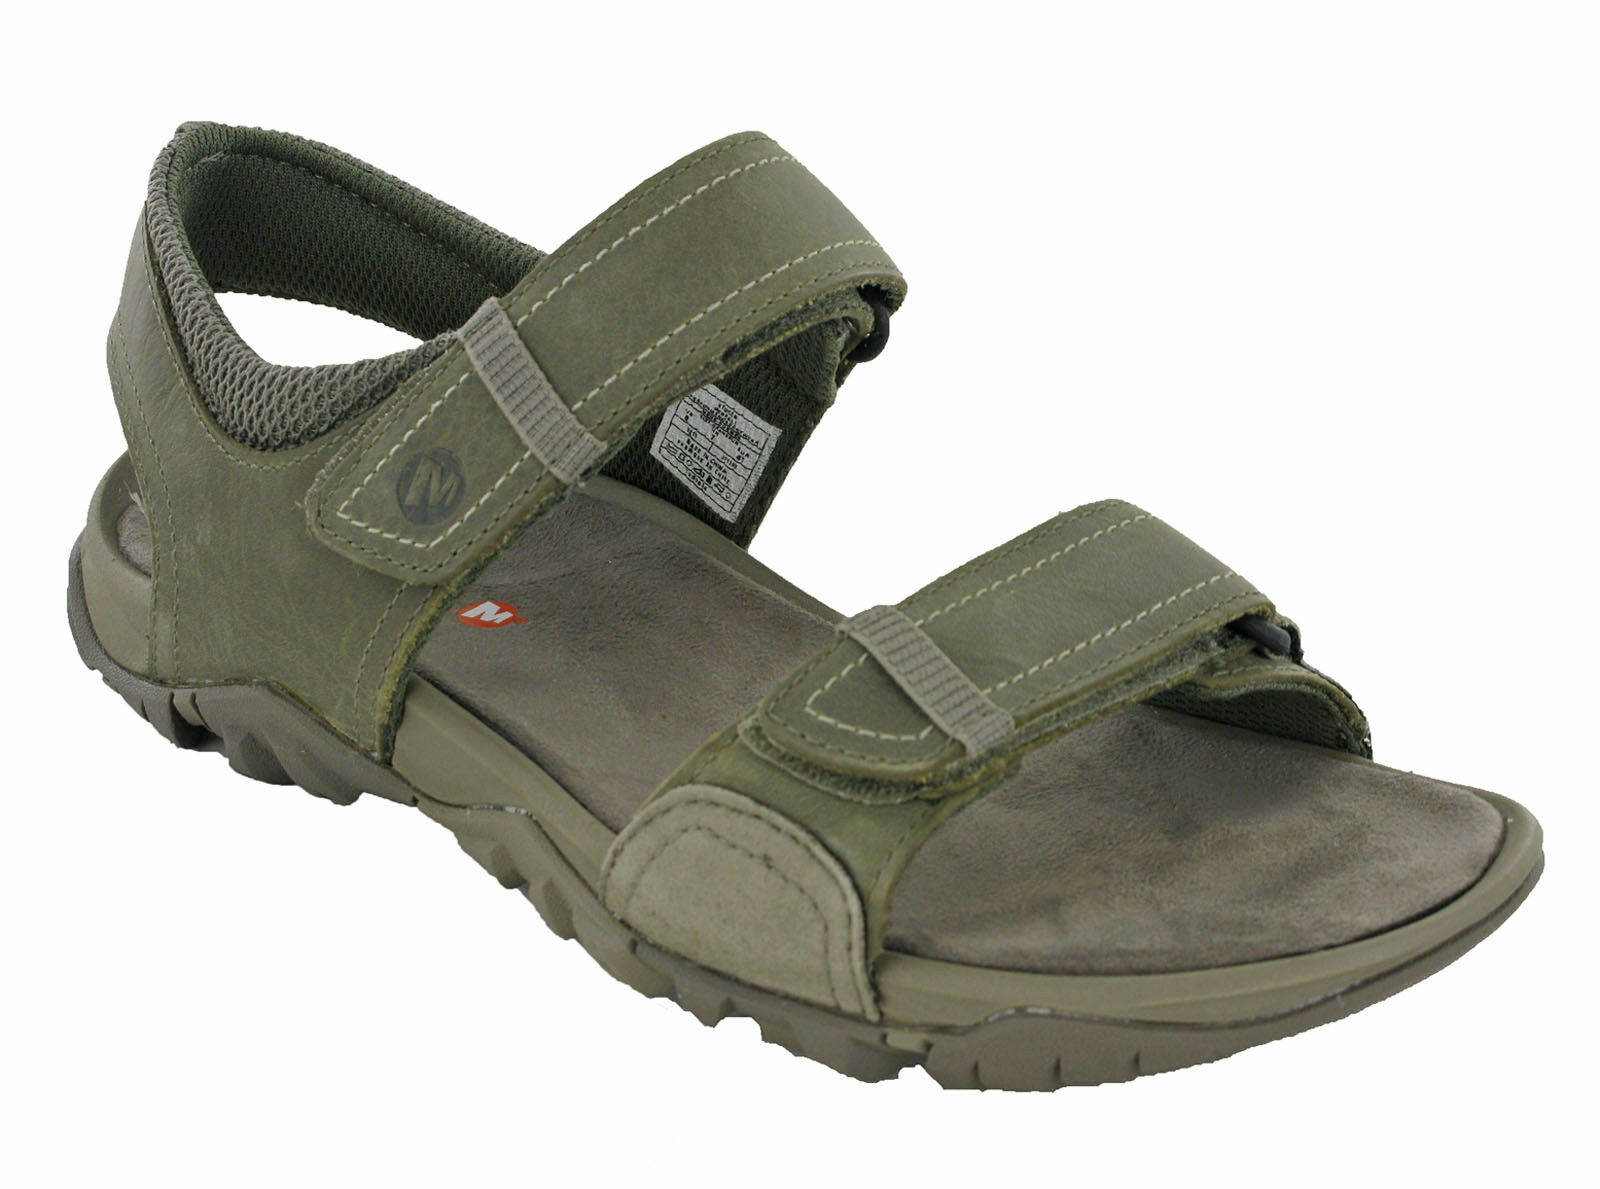 3d8b424720cf Merrell Telluride Strap Sandals Leather Mens Summer Beach Casual Holiday UK  7-10